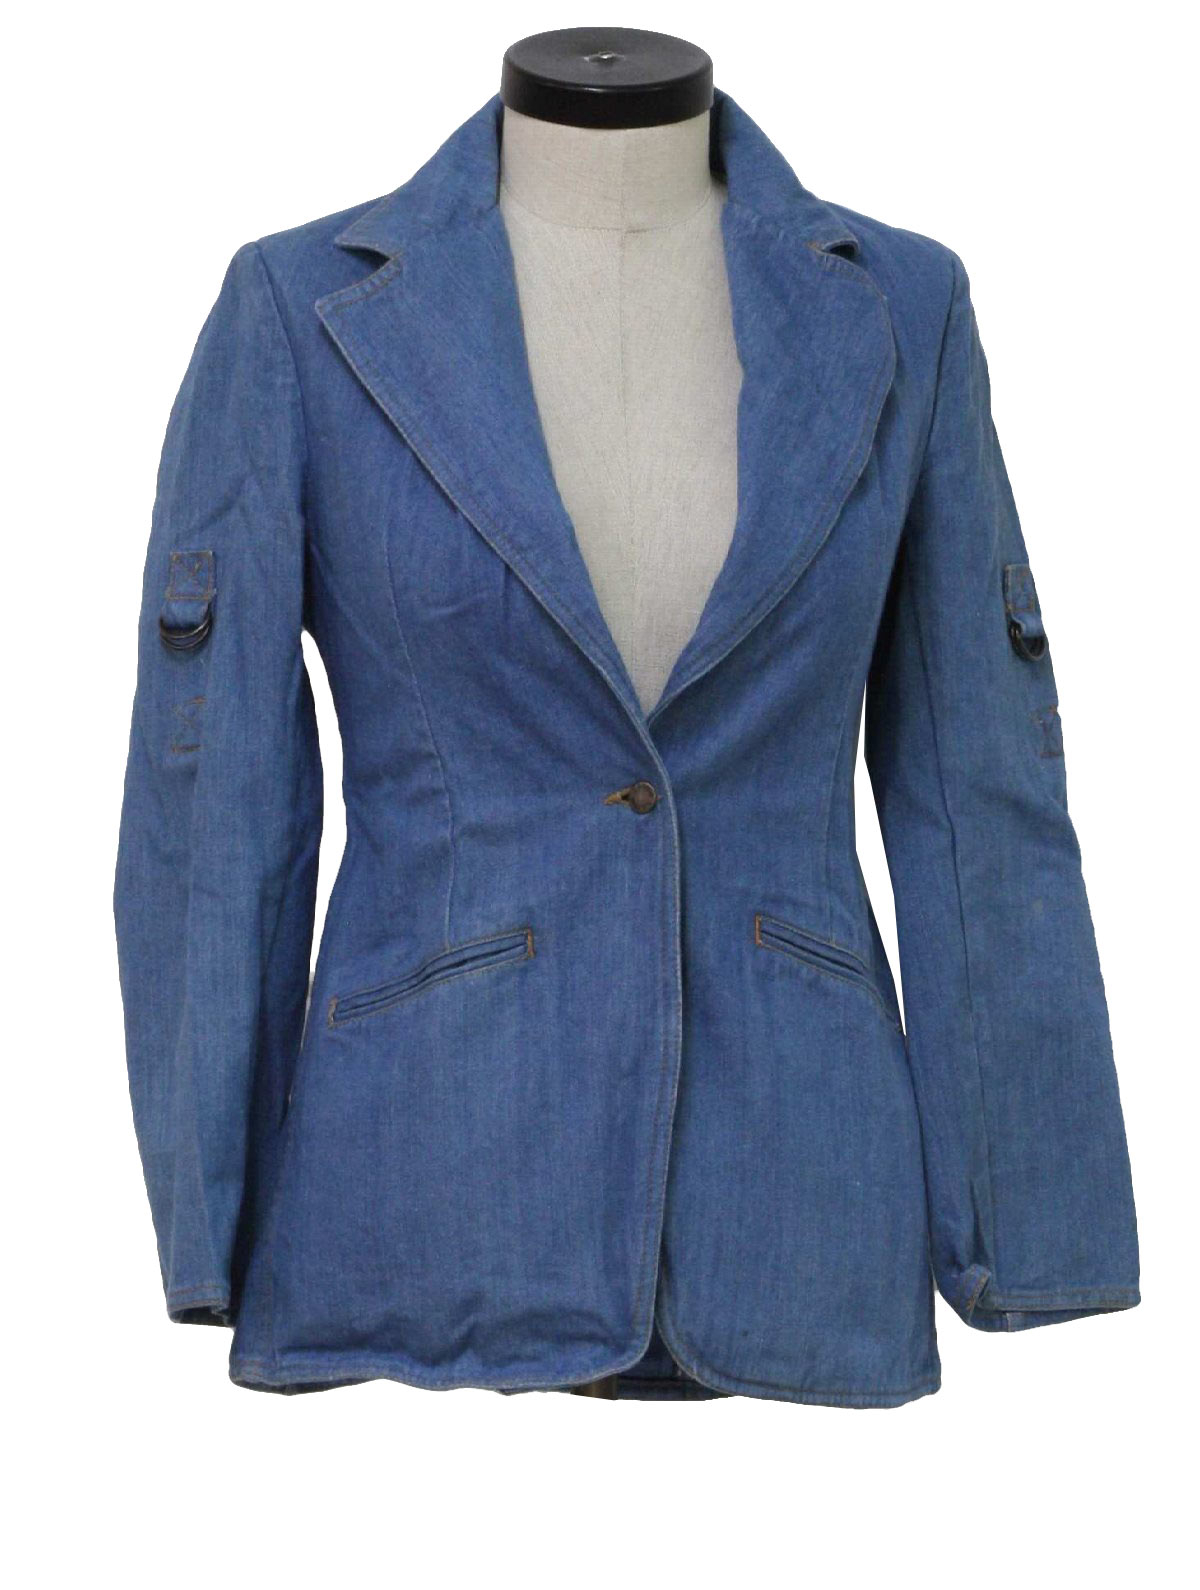 1980's Retro Jacket: 80s -L Avion- Womens blue denim jacket ...